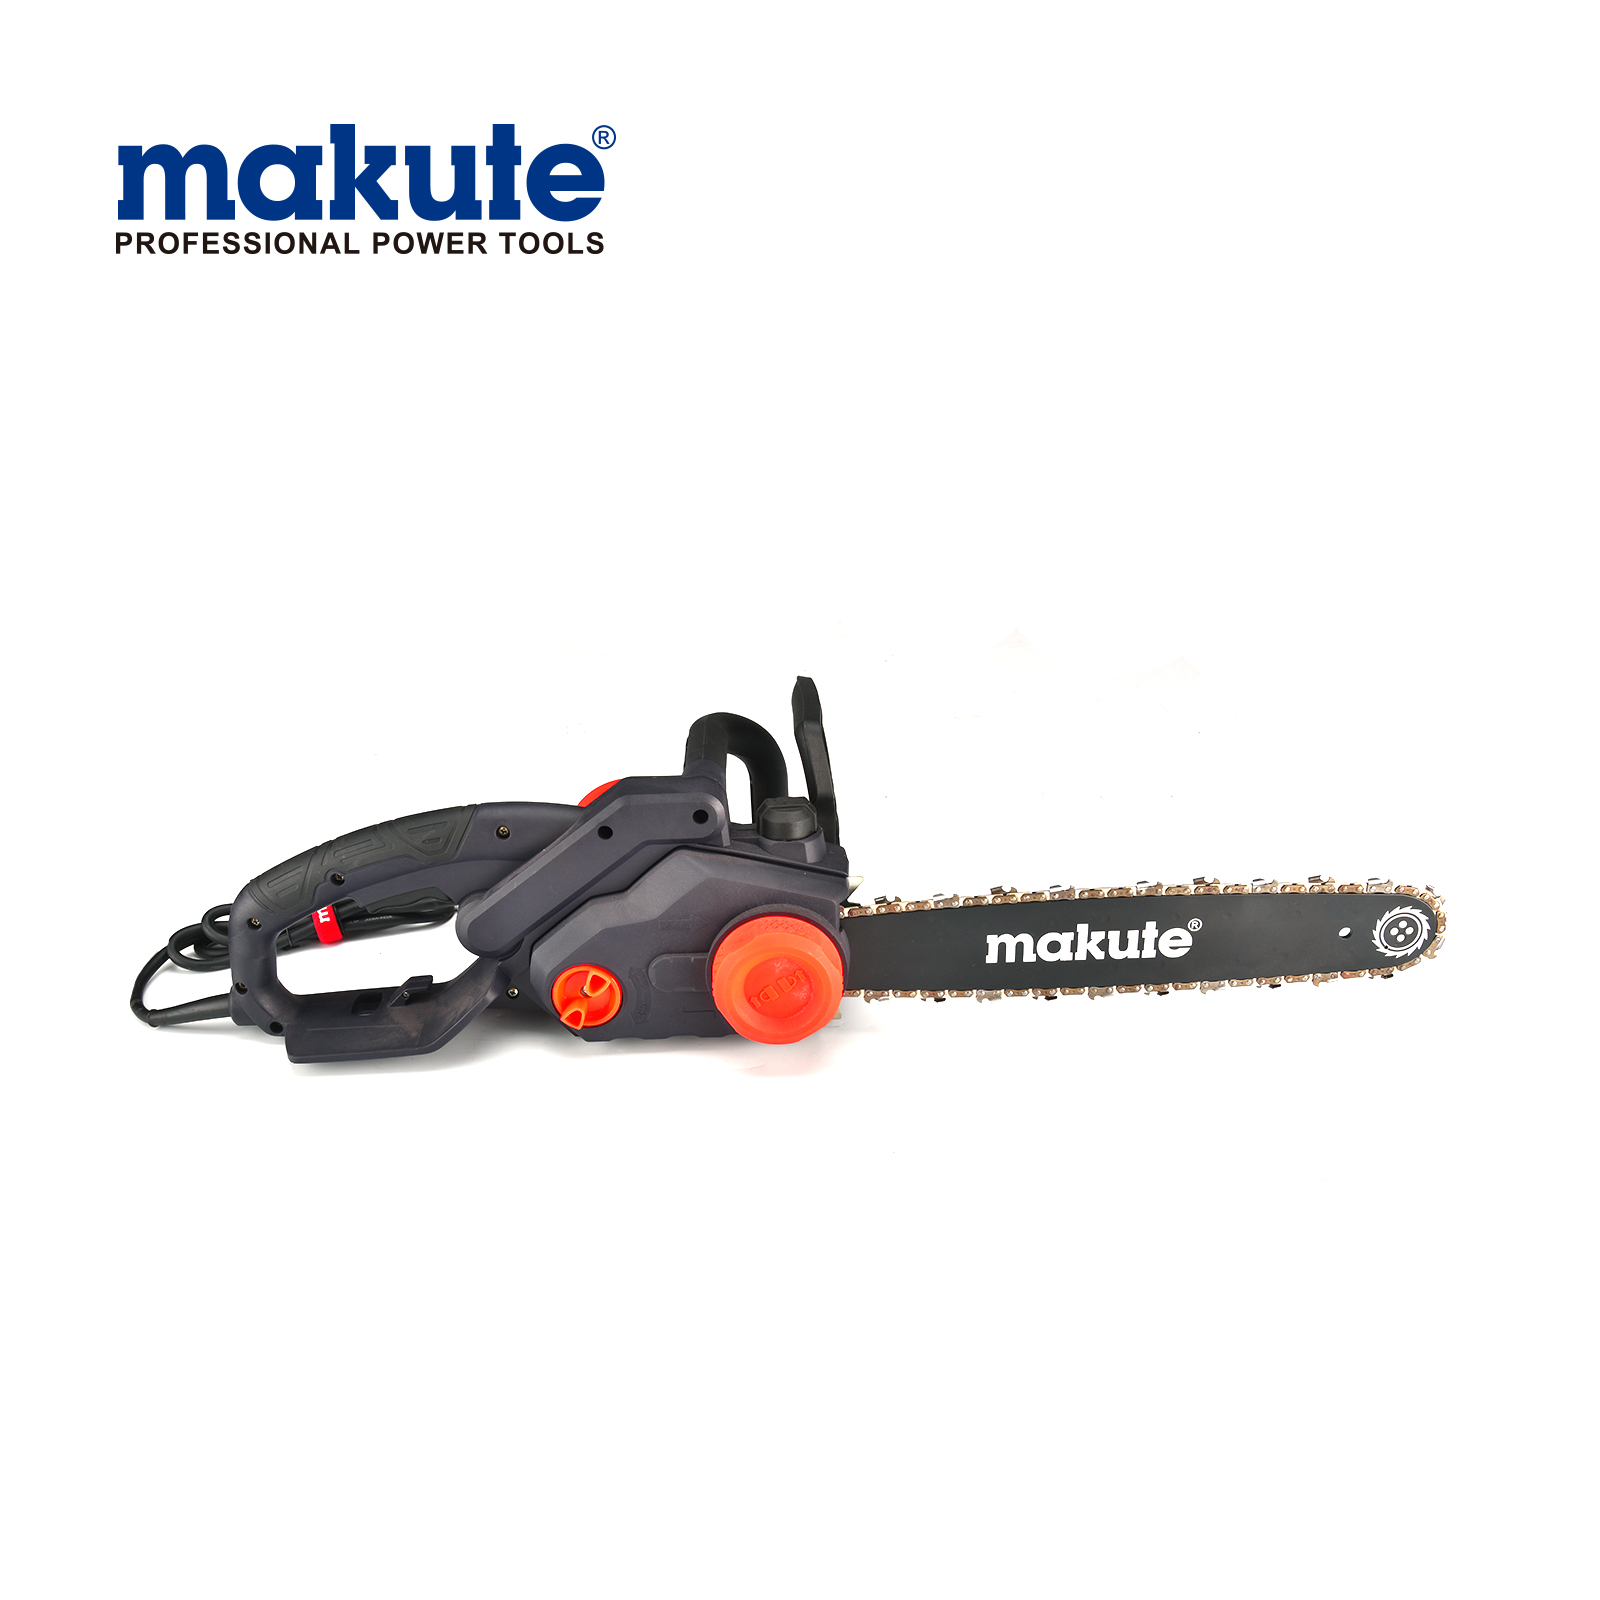 20 inch 2200 watts corded Electric chain saw